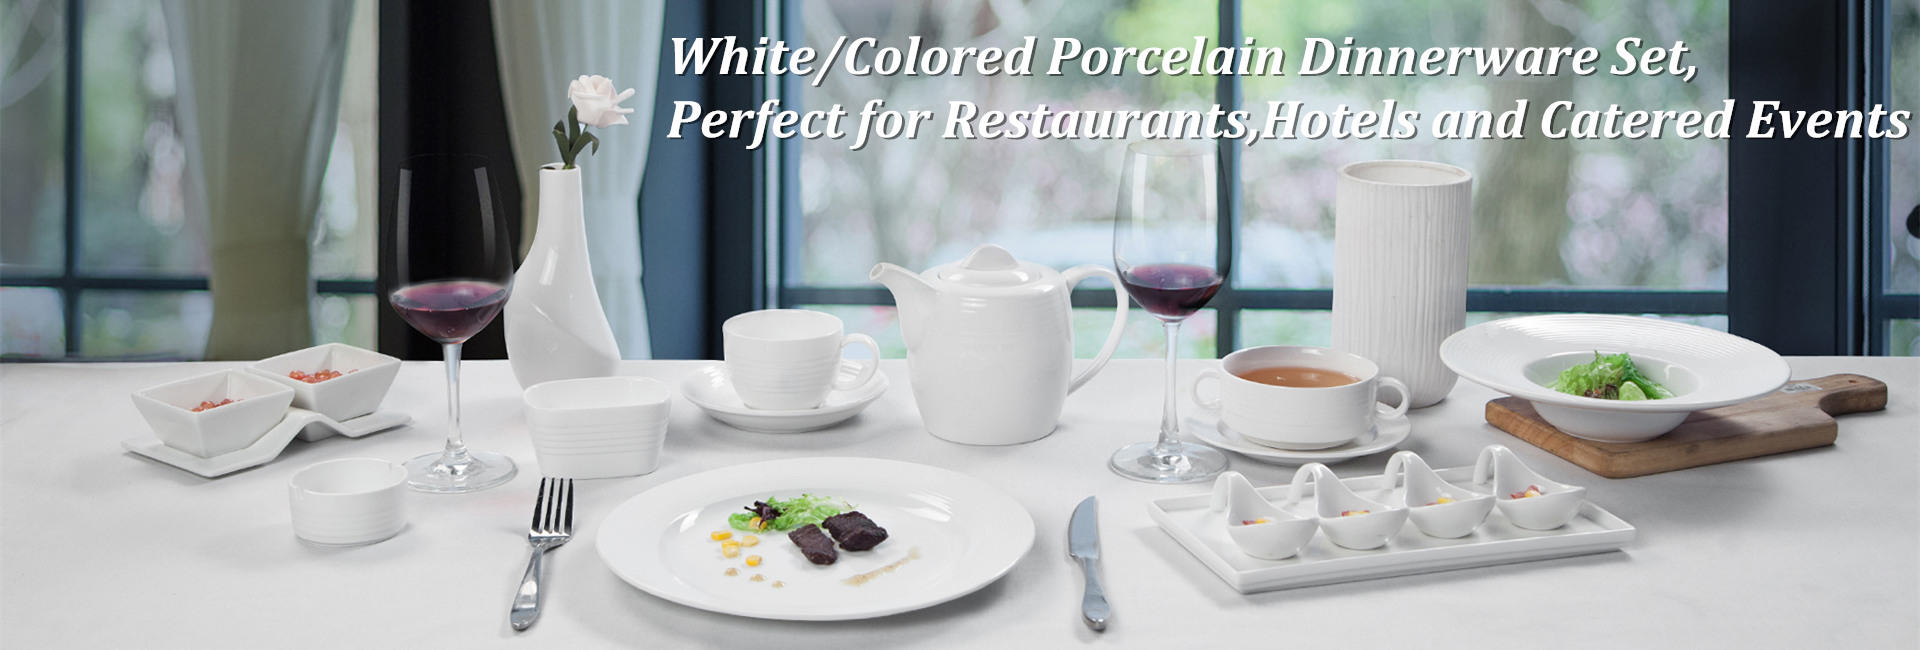 Porcelain Dinnerware Set Supplier